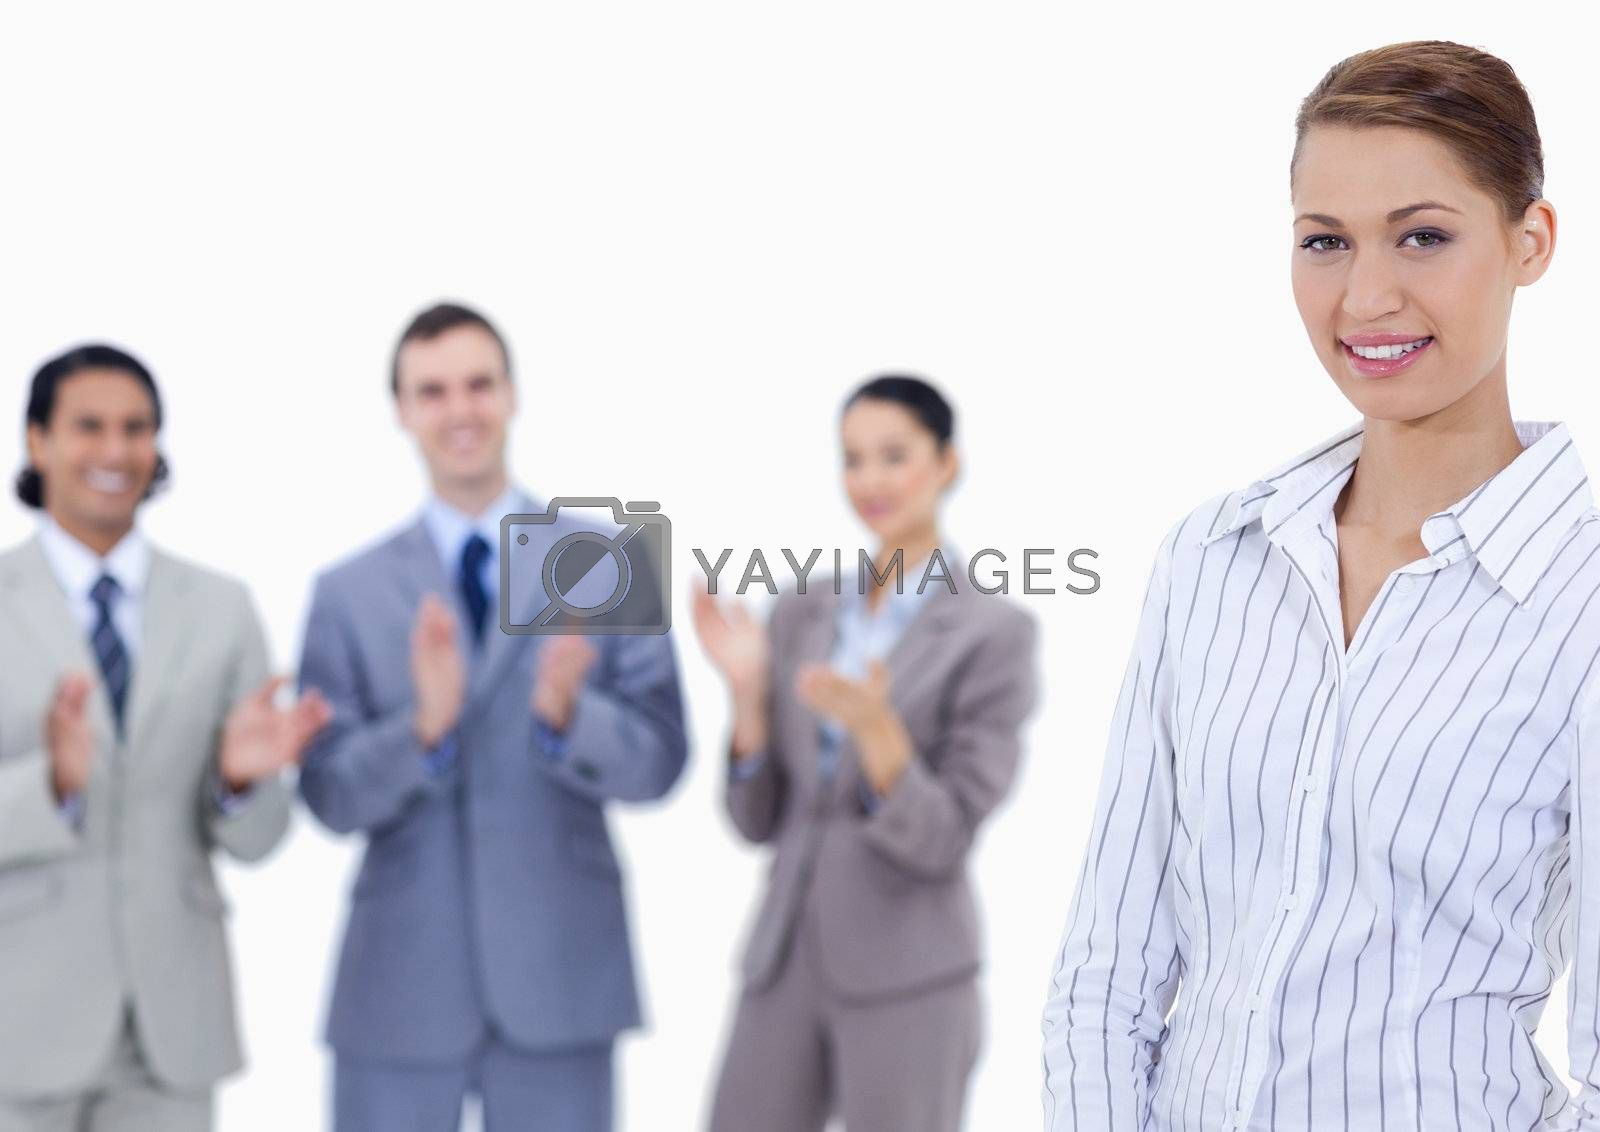 Close-up of a woman smiling with business people applauding while watching her against white background